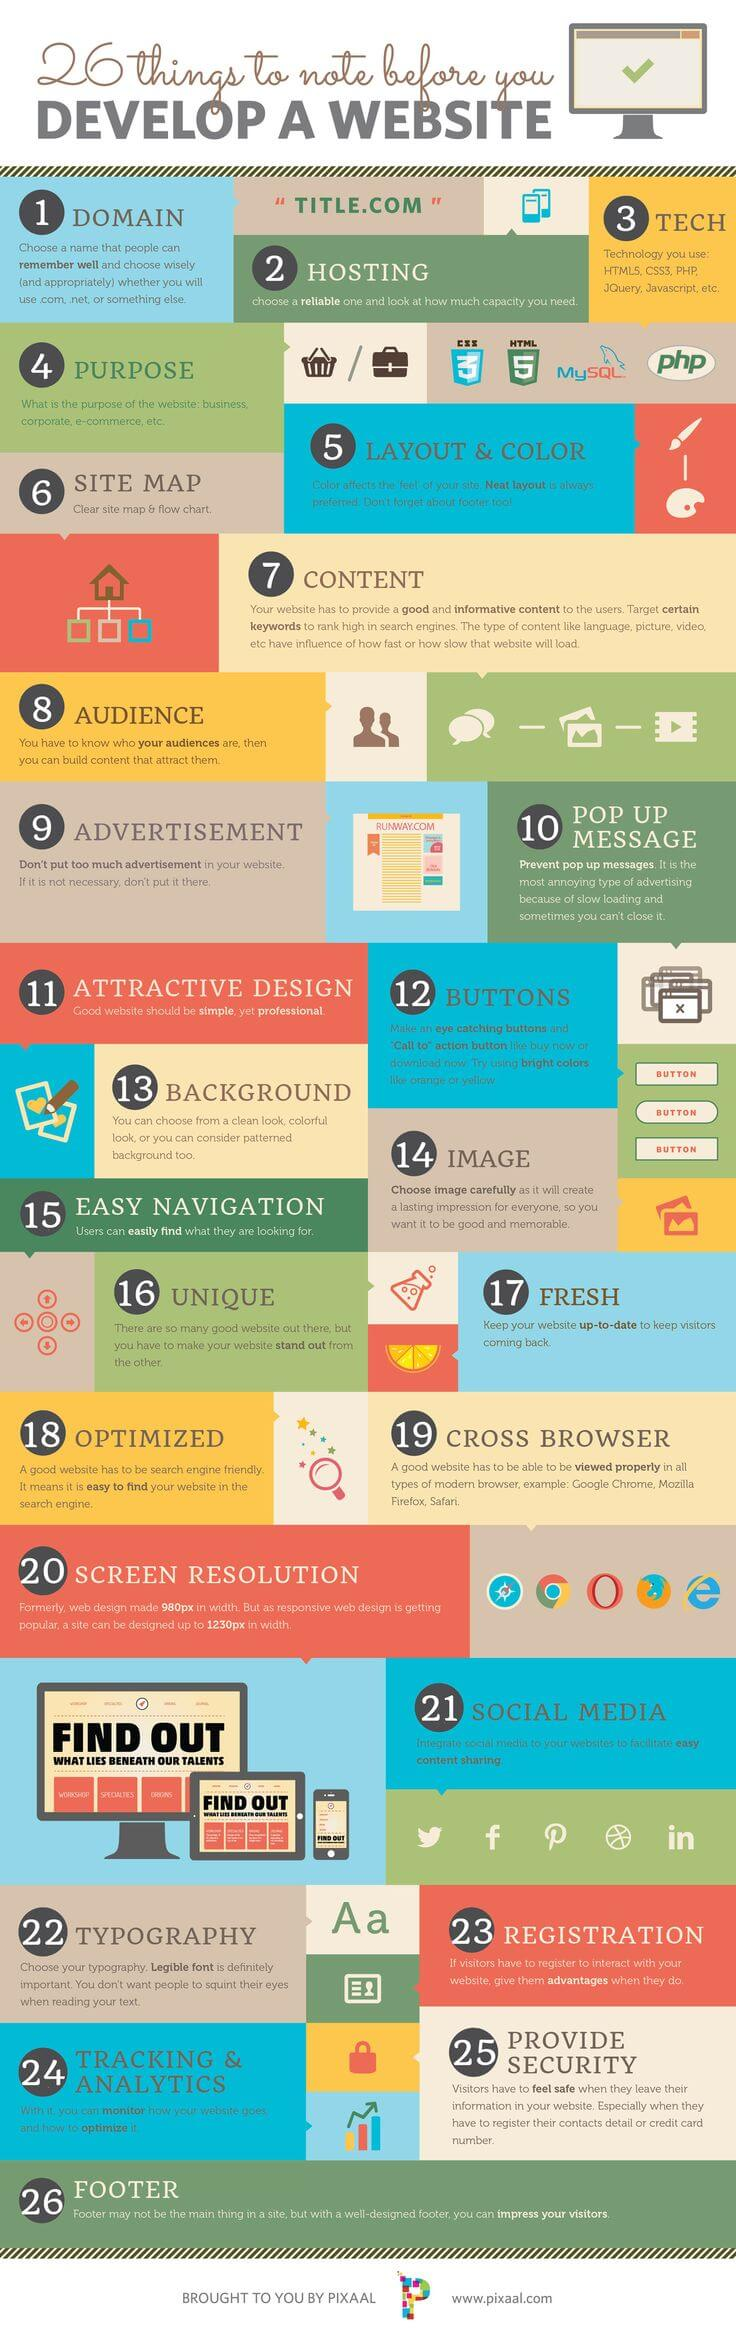 26-choses-a-savoir-avant-creation-site-internet-infographie